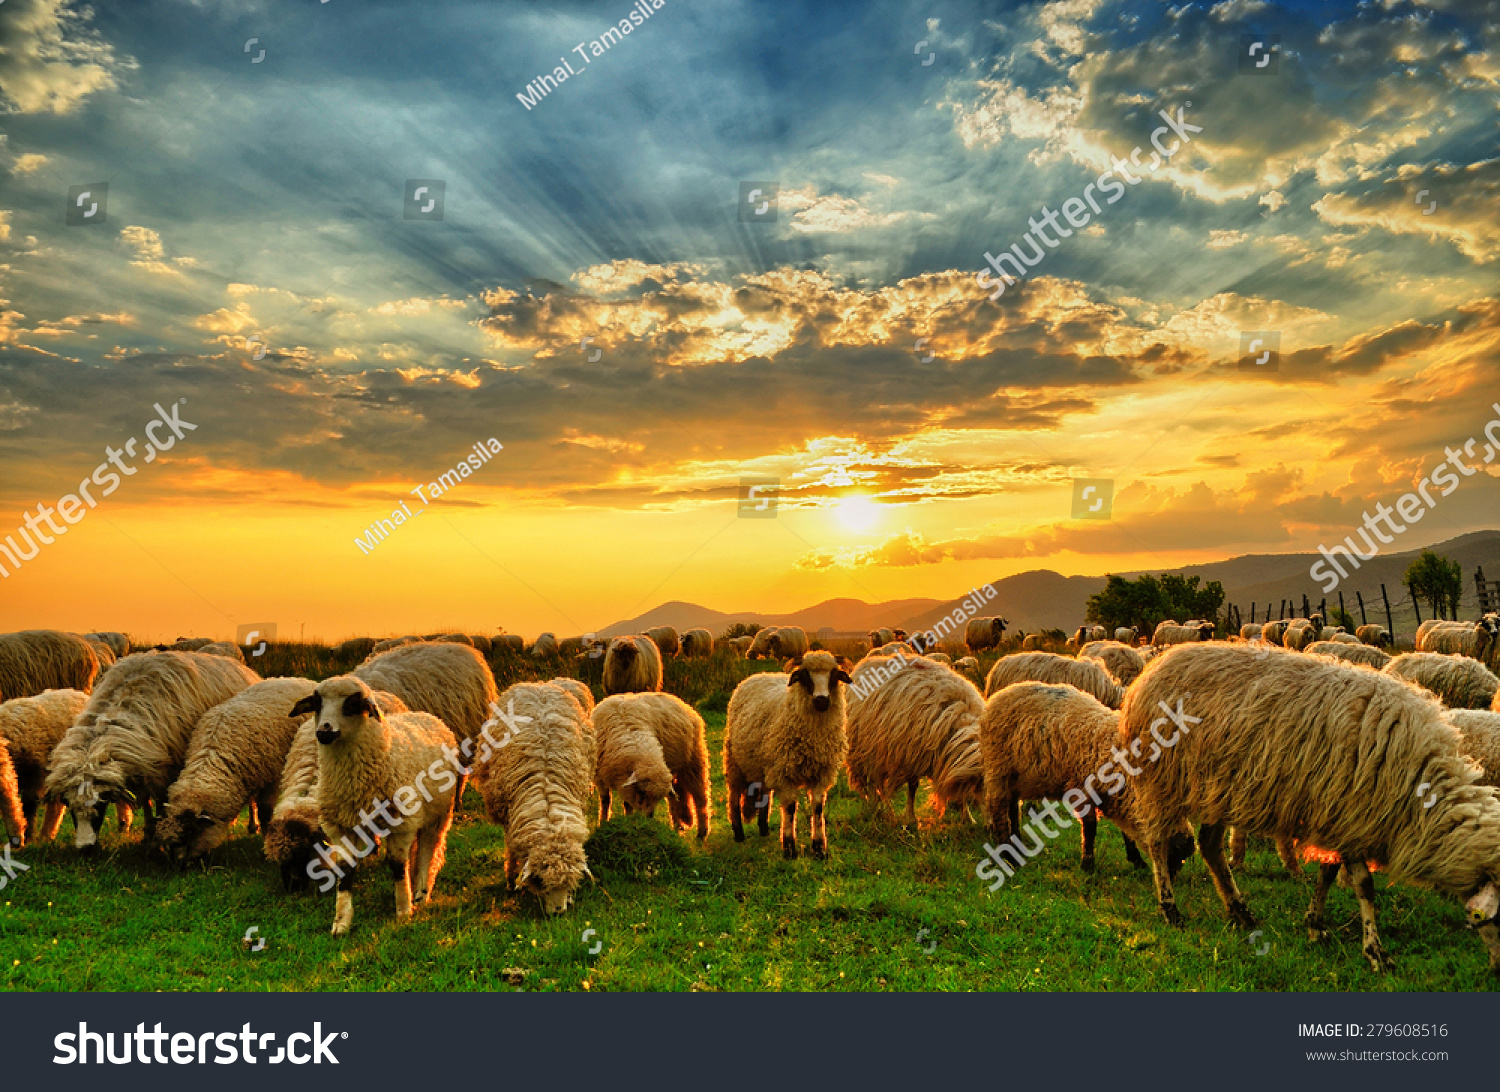 stock-photo-flock-of-sheep-grazing-in-a-